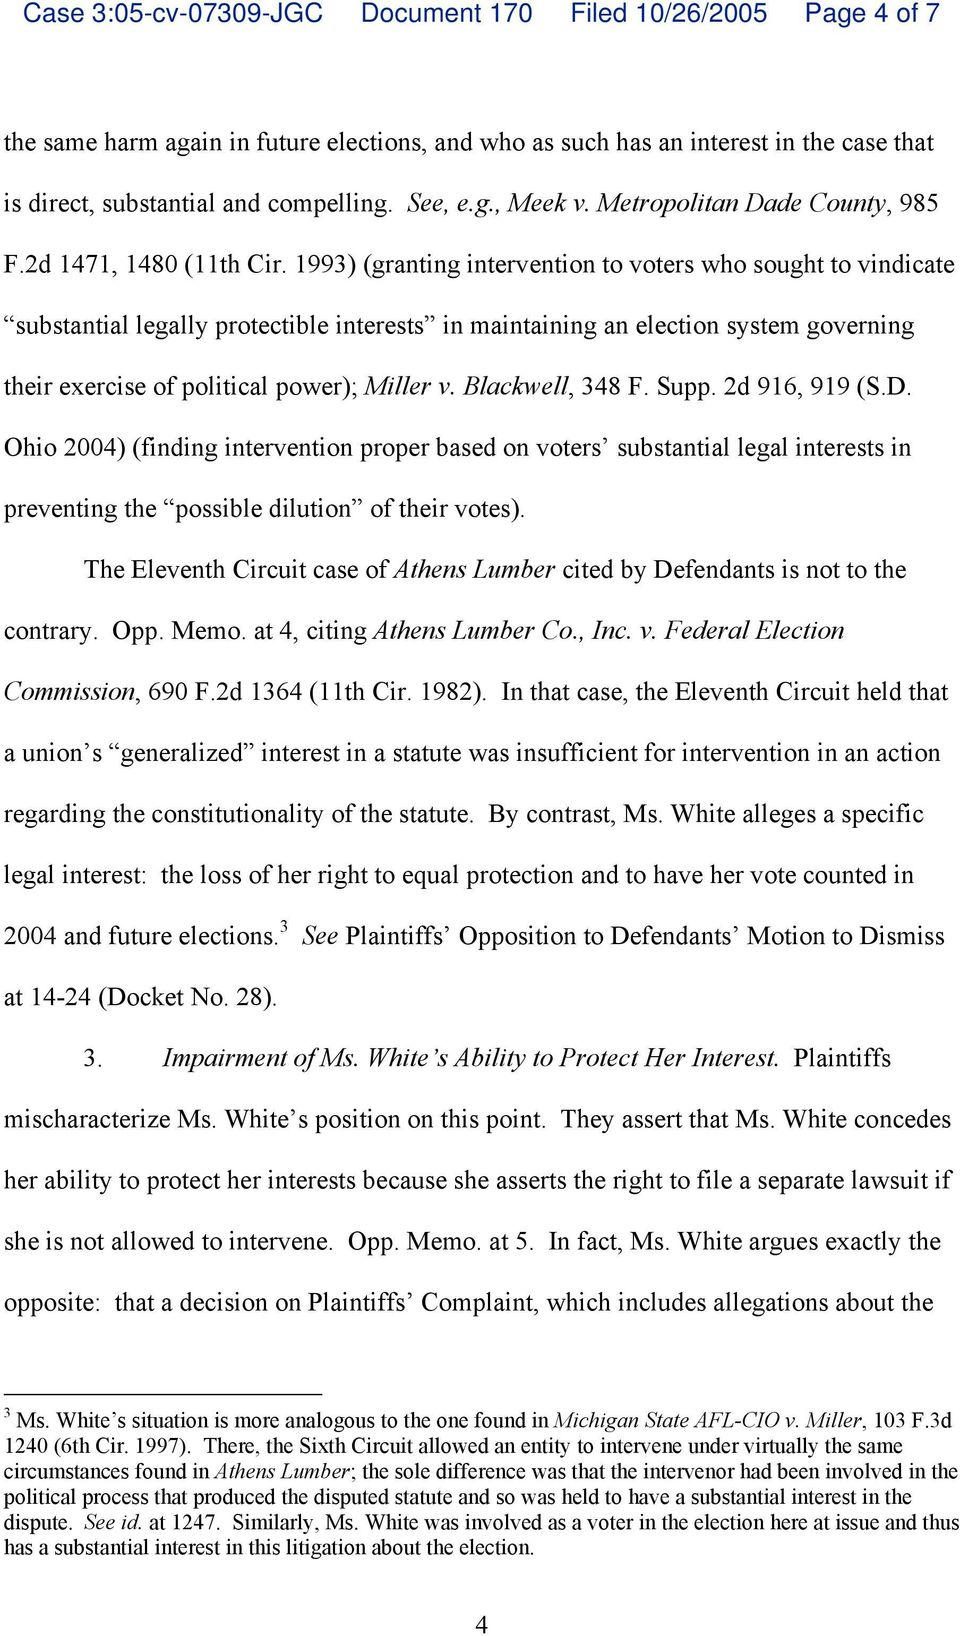 1993) (granting intervention to voters who sought to vindicate substantial legally protectible interests in maintaining an election system governing their exercise of political power); Miller v.